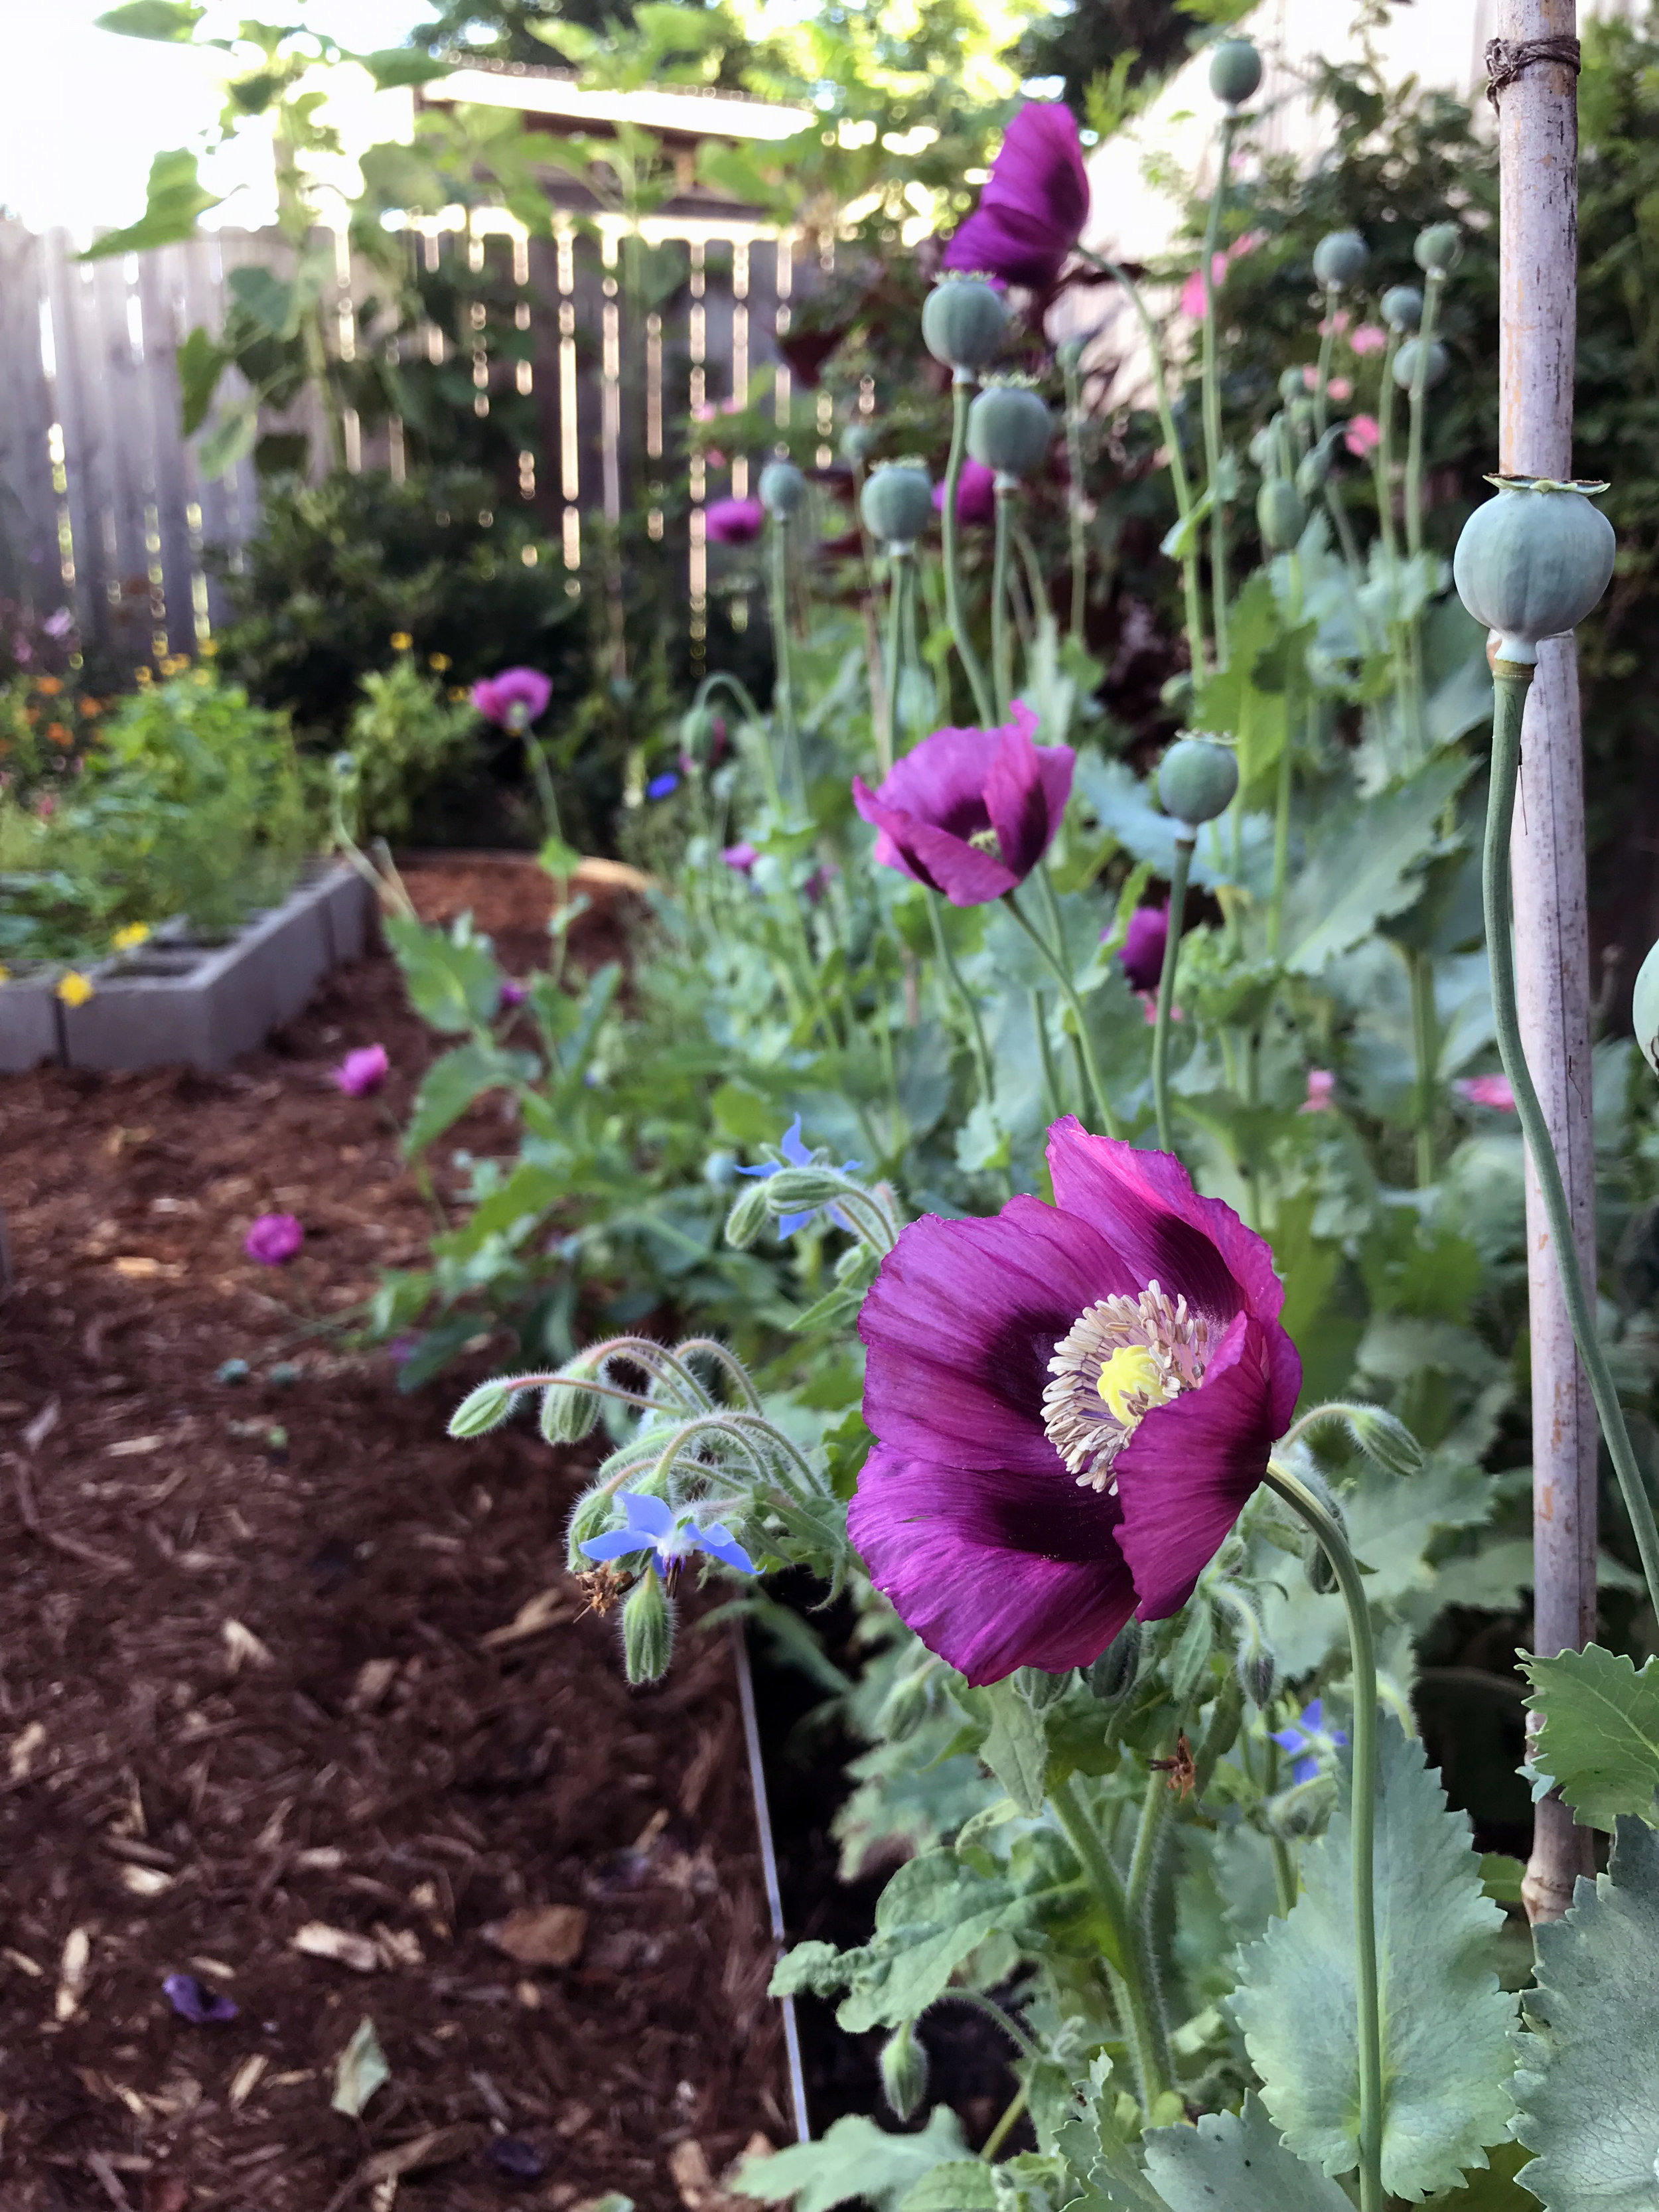 A View in My Garden with Lauren's Grape Poppies Blooming Beside Borage